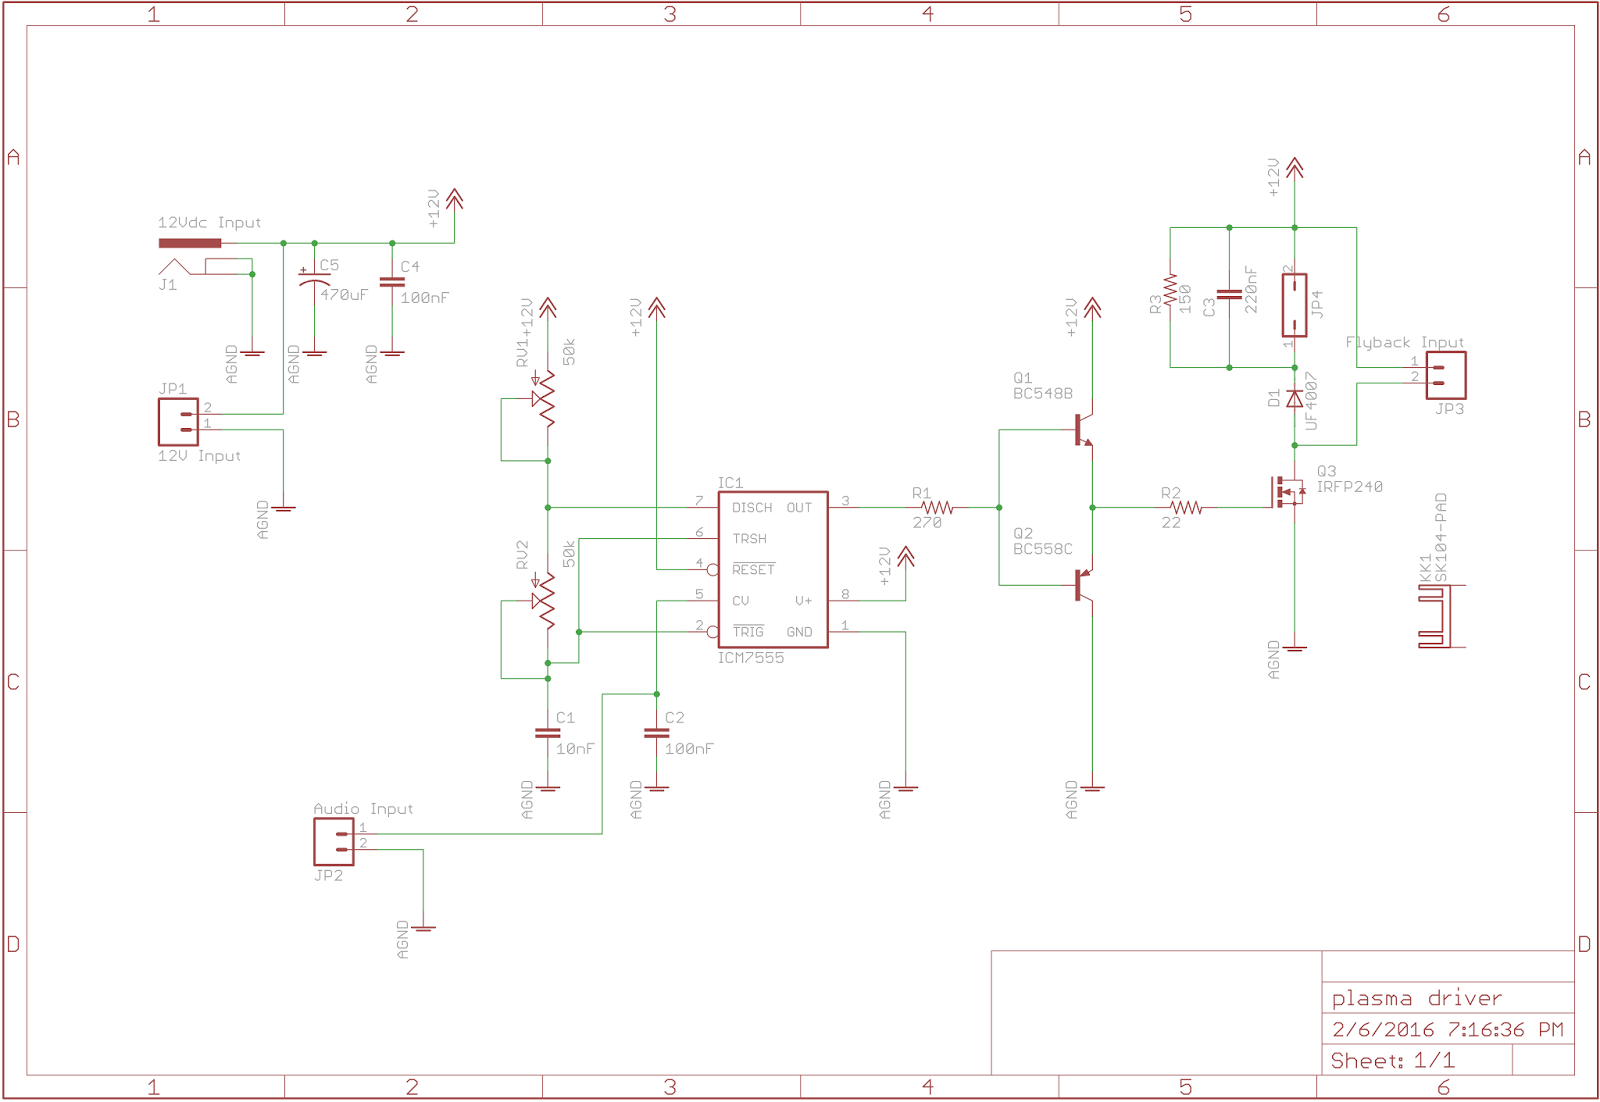 The Answer Is 42 555 Flyback Driver And Plasma Speaker Circuit Diagram Fairly Simple In Operation Power Supplied Via A Standard 12 Vdc 5 Amp Supply Dc Barrel Socket Or Mm Screw